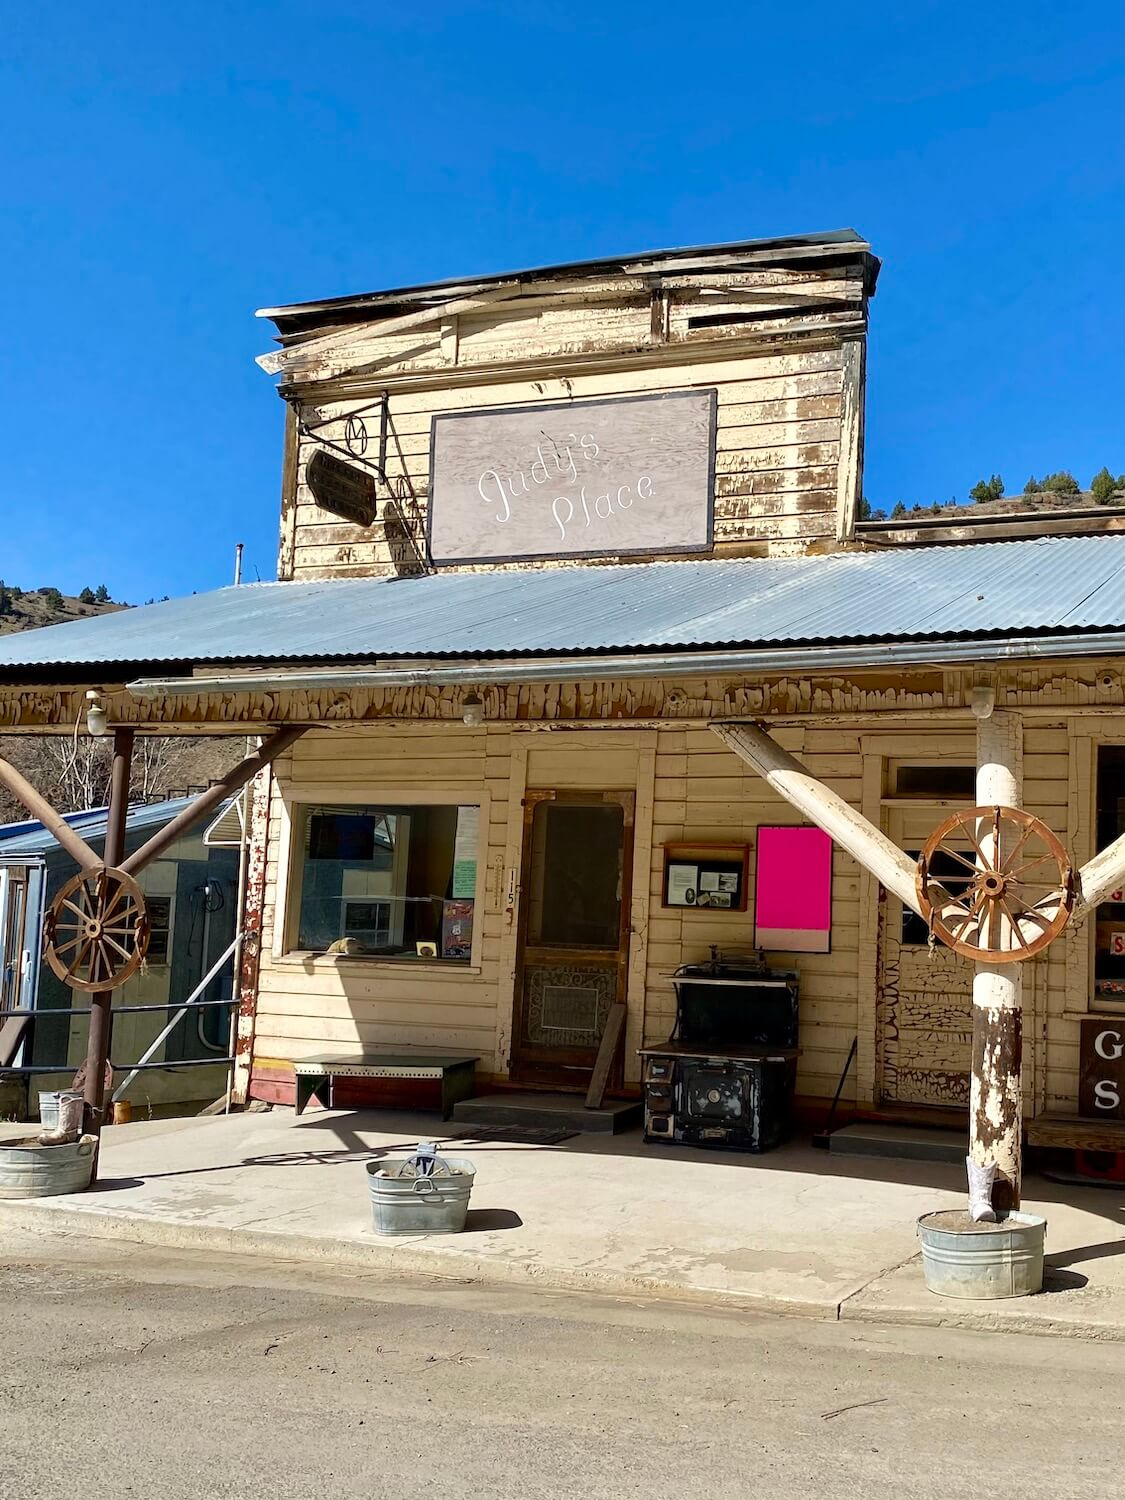 An antique store in Mitchell, Oregon named Judy's Place shows off a western style store front that could be from the pioneer days.  Two old wagon wheels are propped up on the support beams and a bright pink sign is posted near the door.